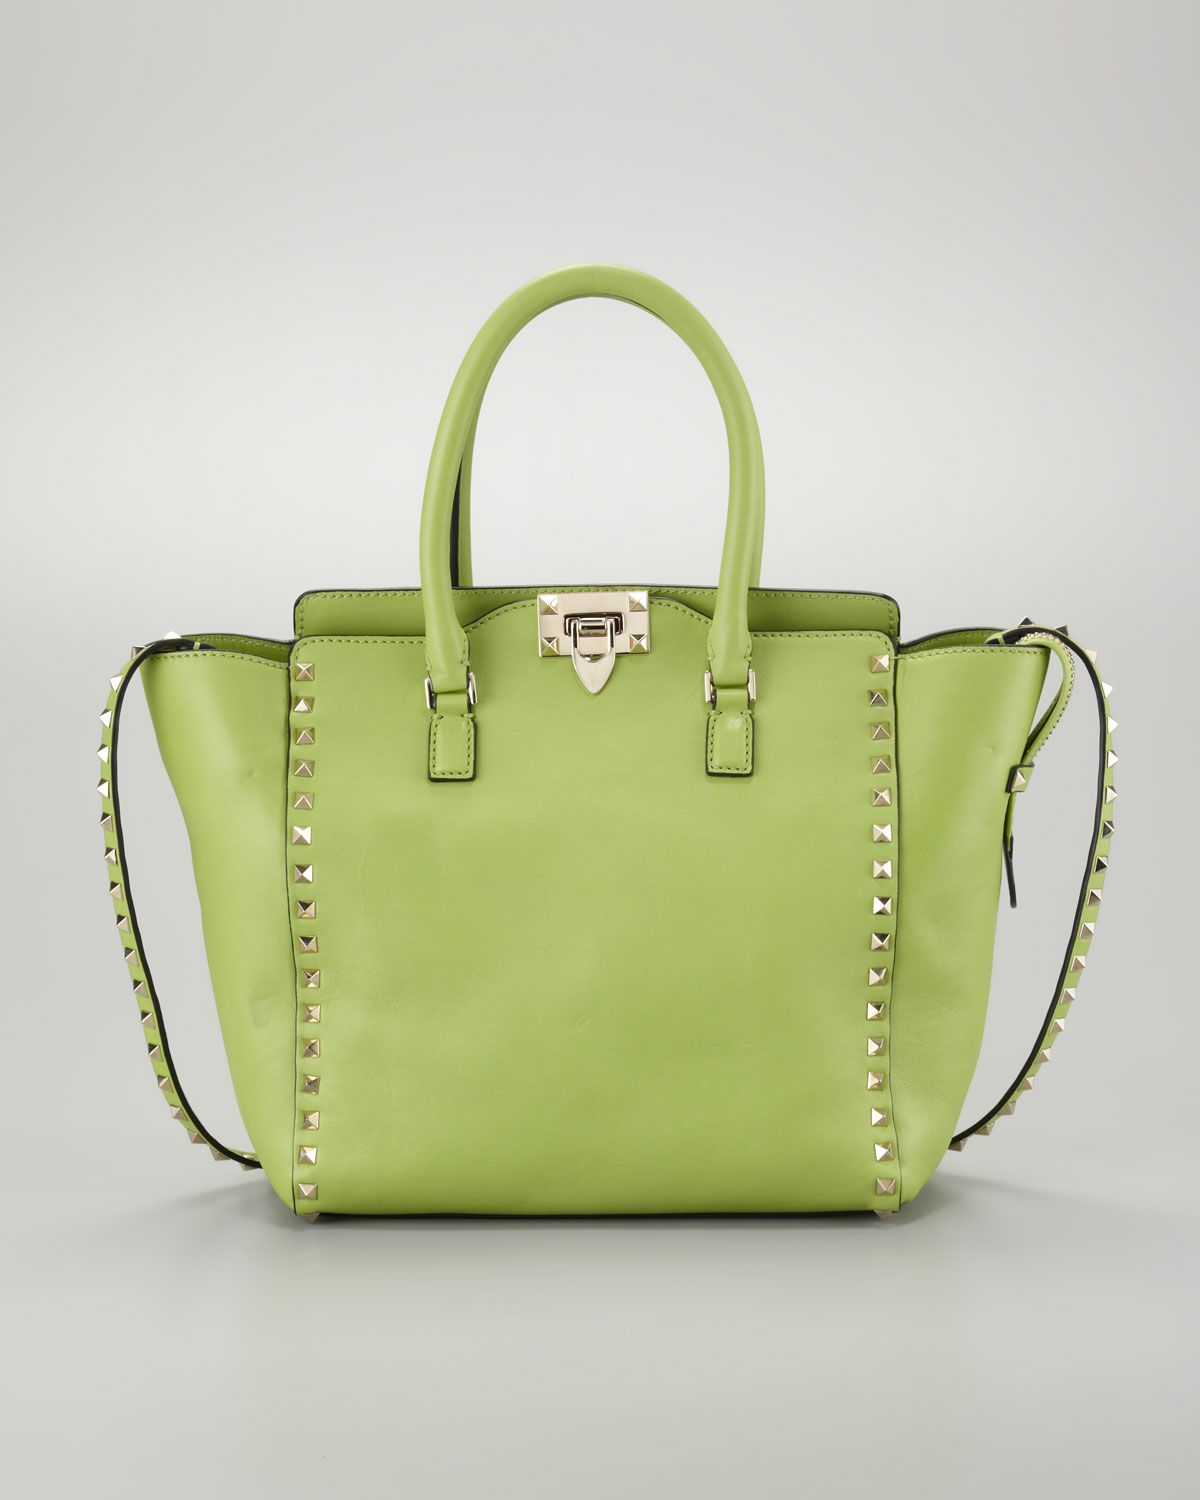 cb34d4e2da0 Rockstud Medium Tote Bag, Pop Apple - Valentino, Neiman Marcus ...